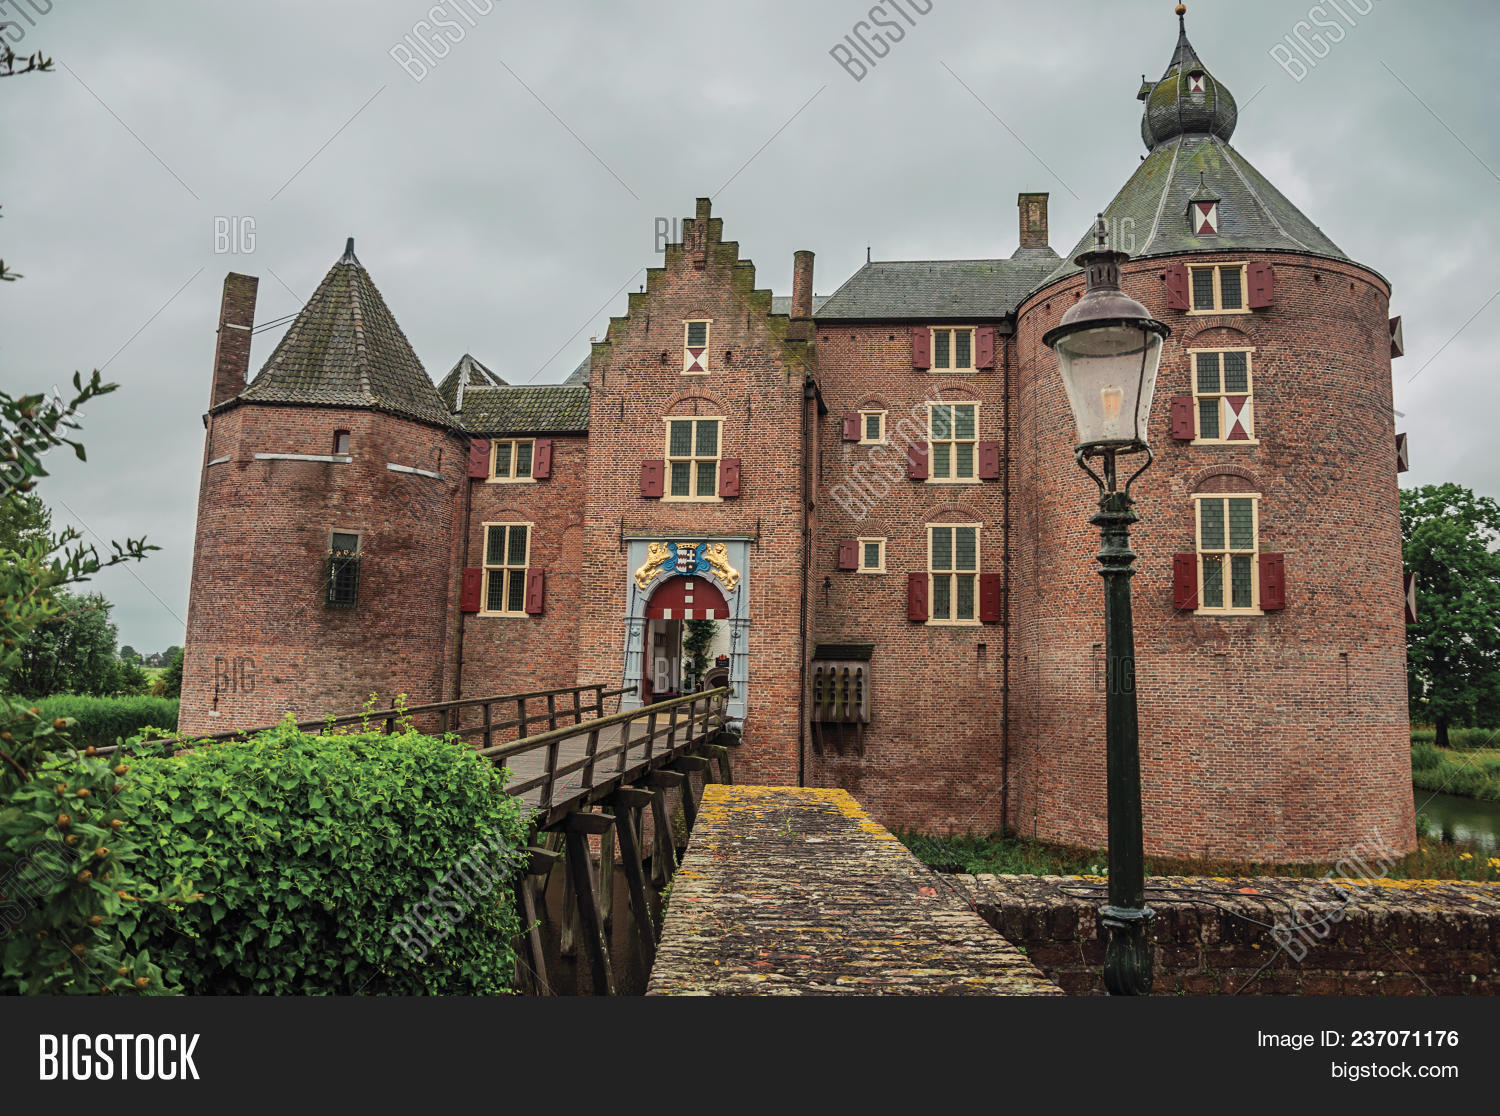 Medieval Ammersoyen Image & Photo (Free Trial) | Bigstock